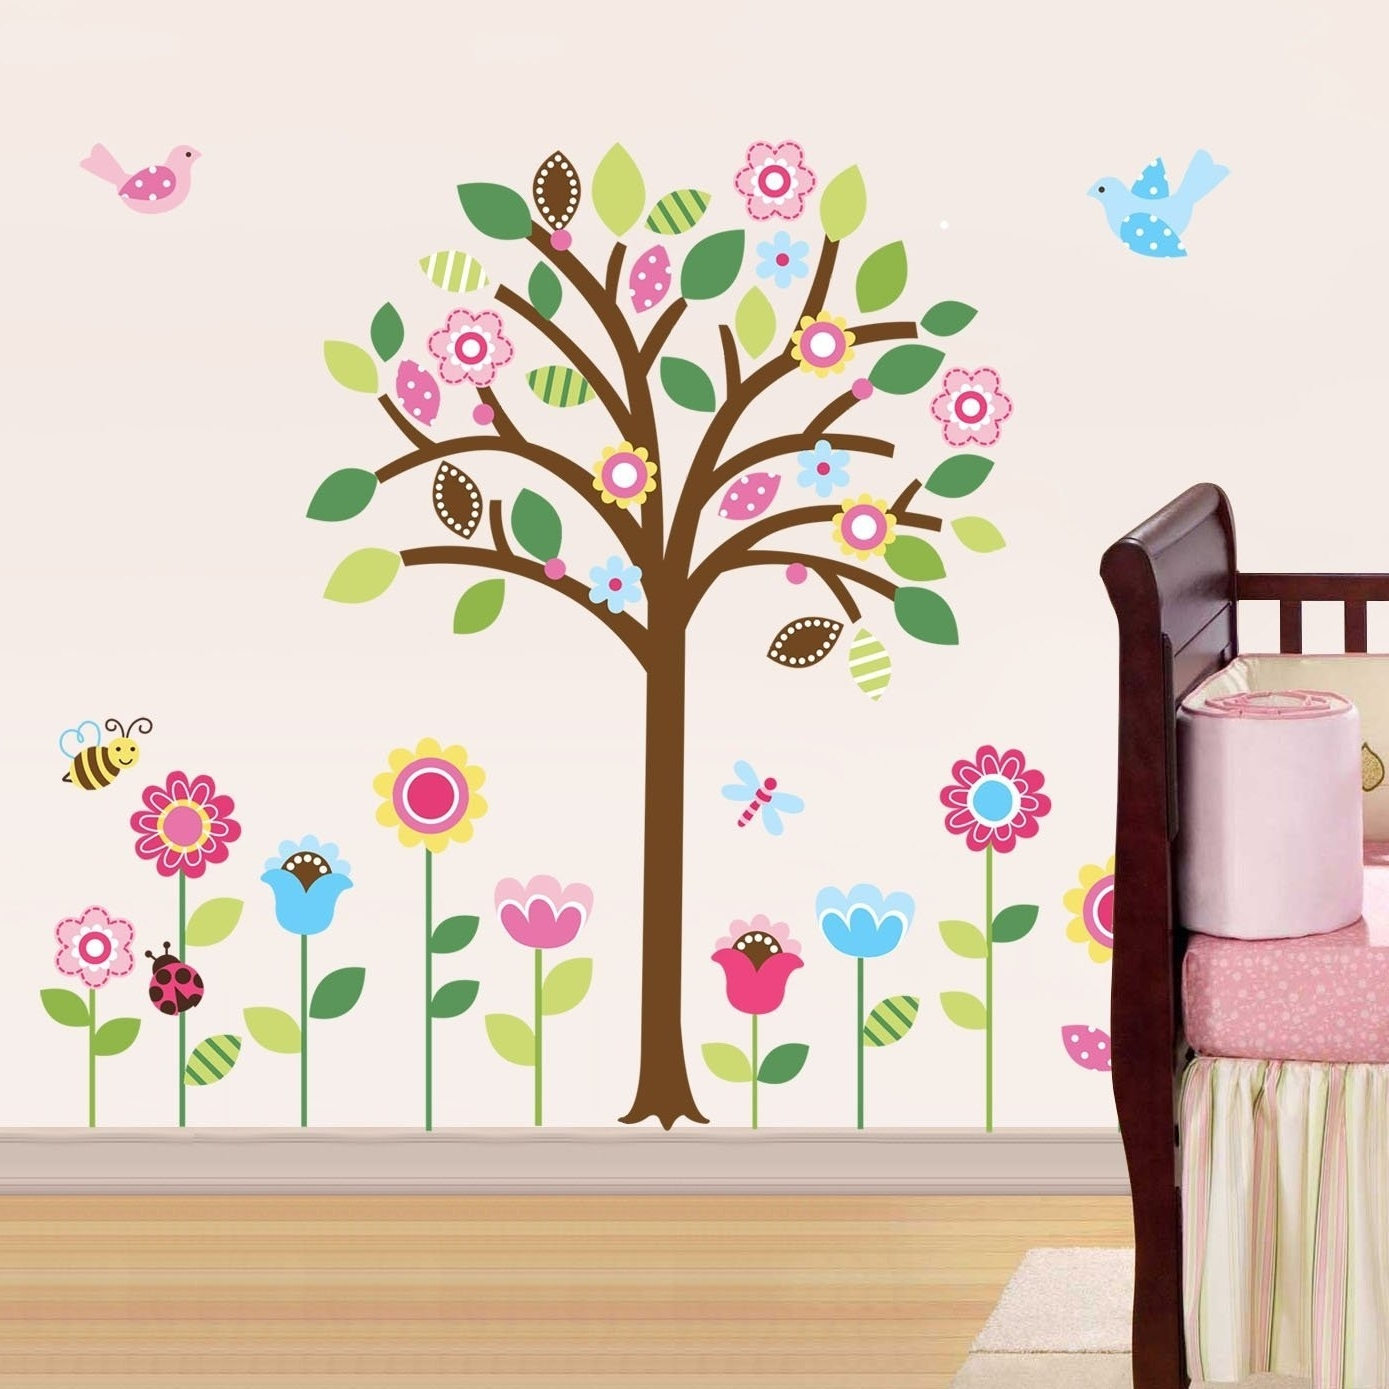 Amazon: Pretty Pastel Garden Giant Peel & Stick Wall Art Inside Latest Fabric Wall Art Stickers (View 2 of 15)